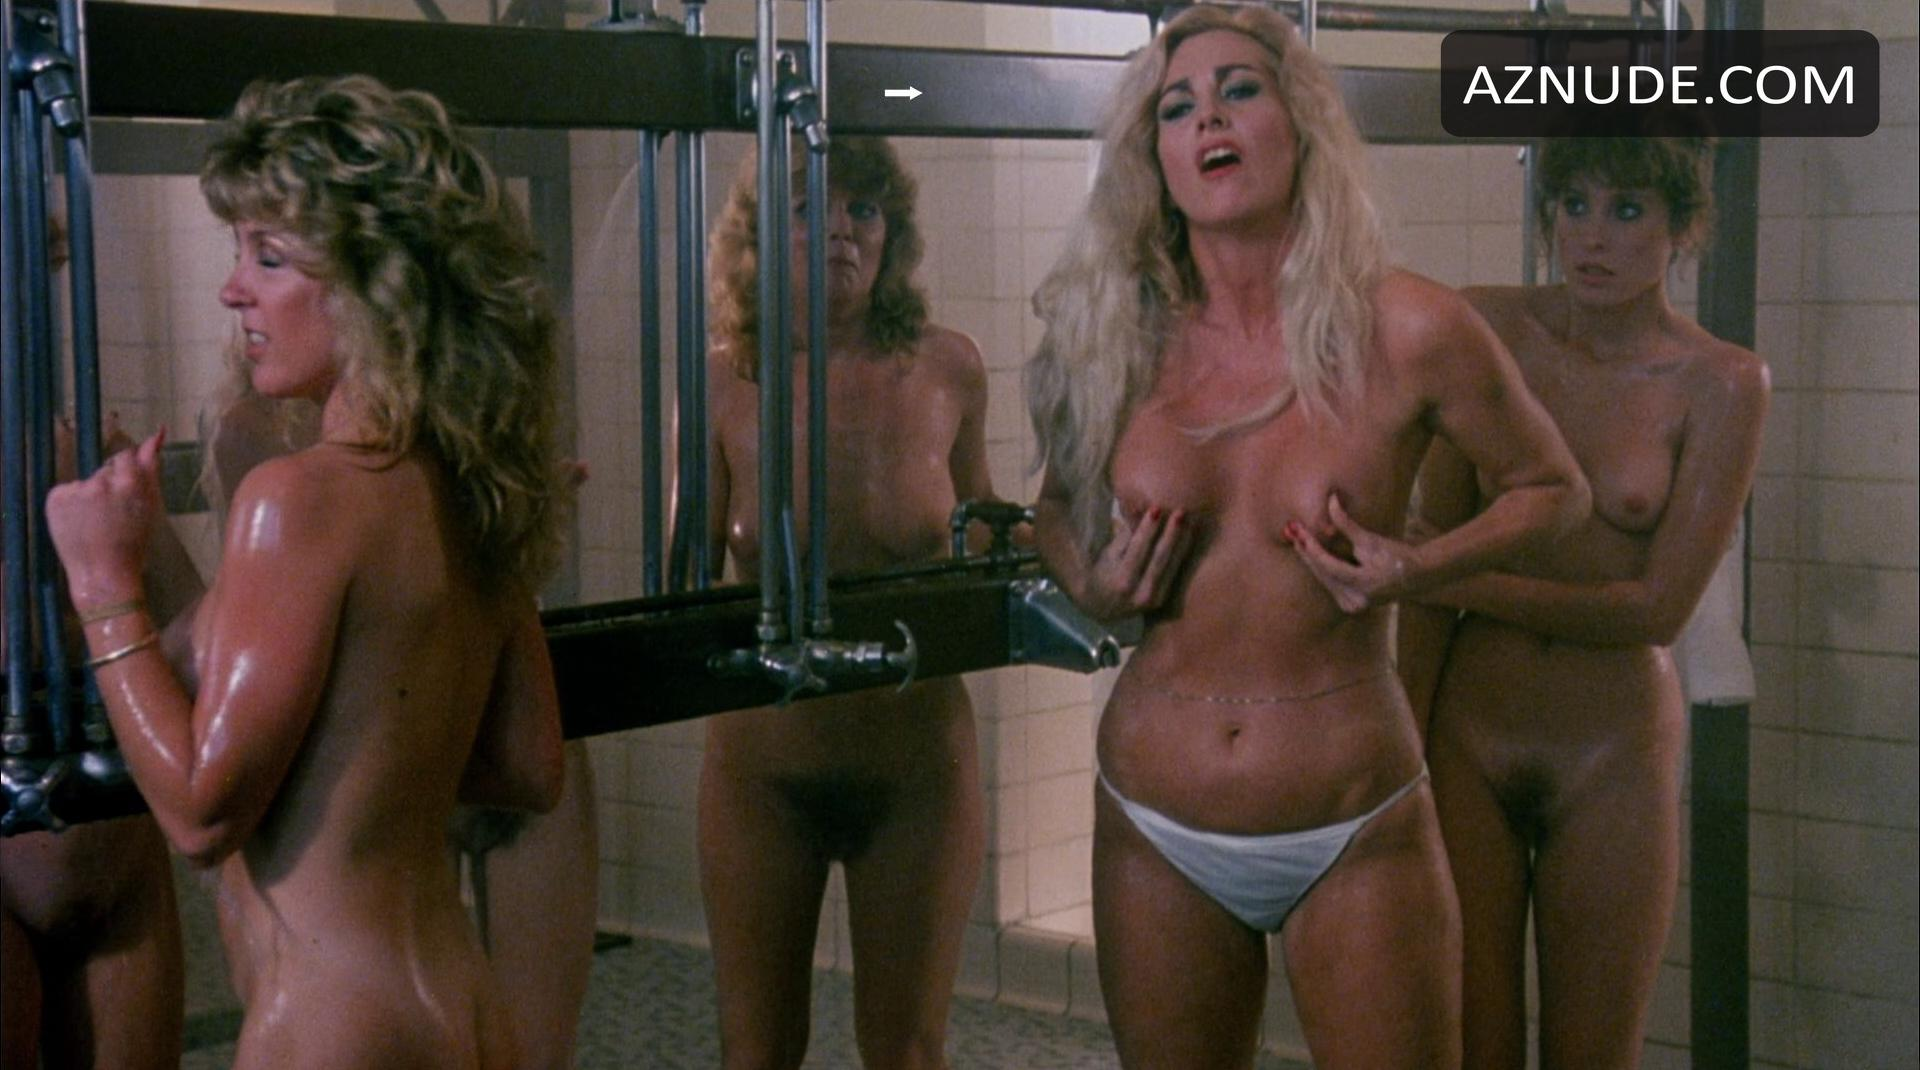 Edy williams hellhole - 1 part 9